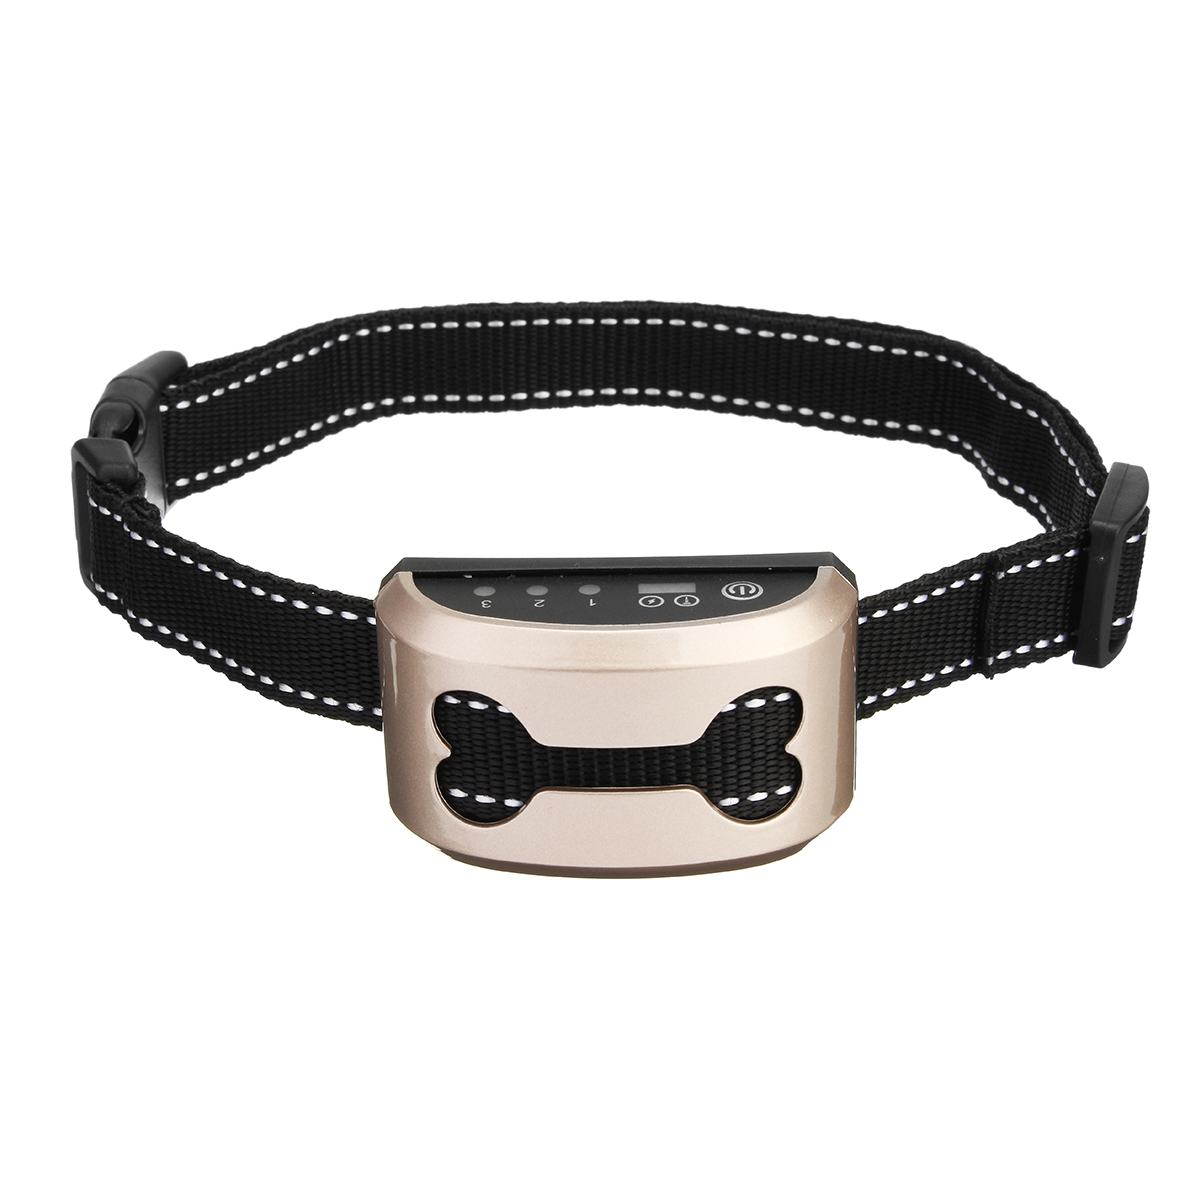 Rechargeable and Anti Bark Dog Shock Collar for Dog Training with Remote and Voice Control 12